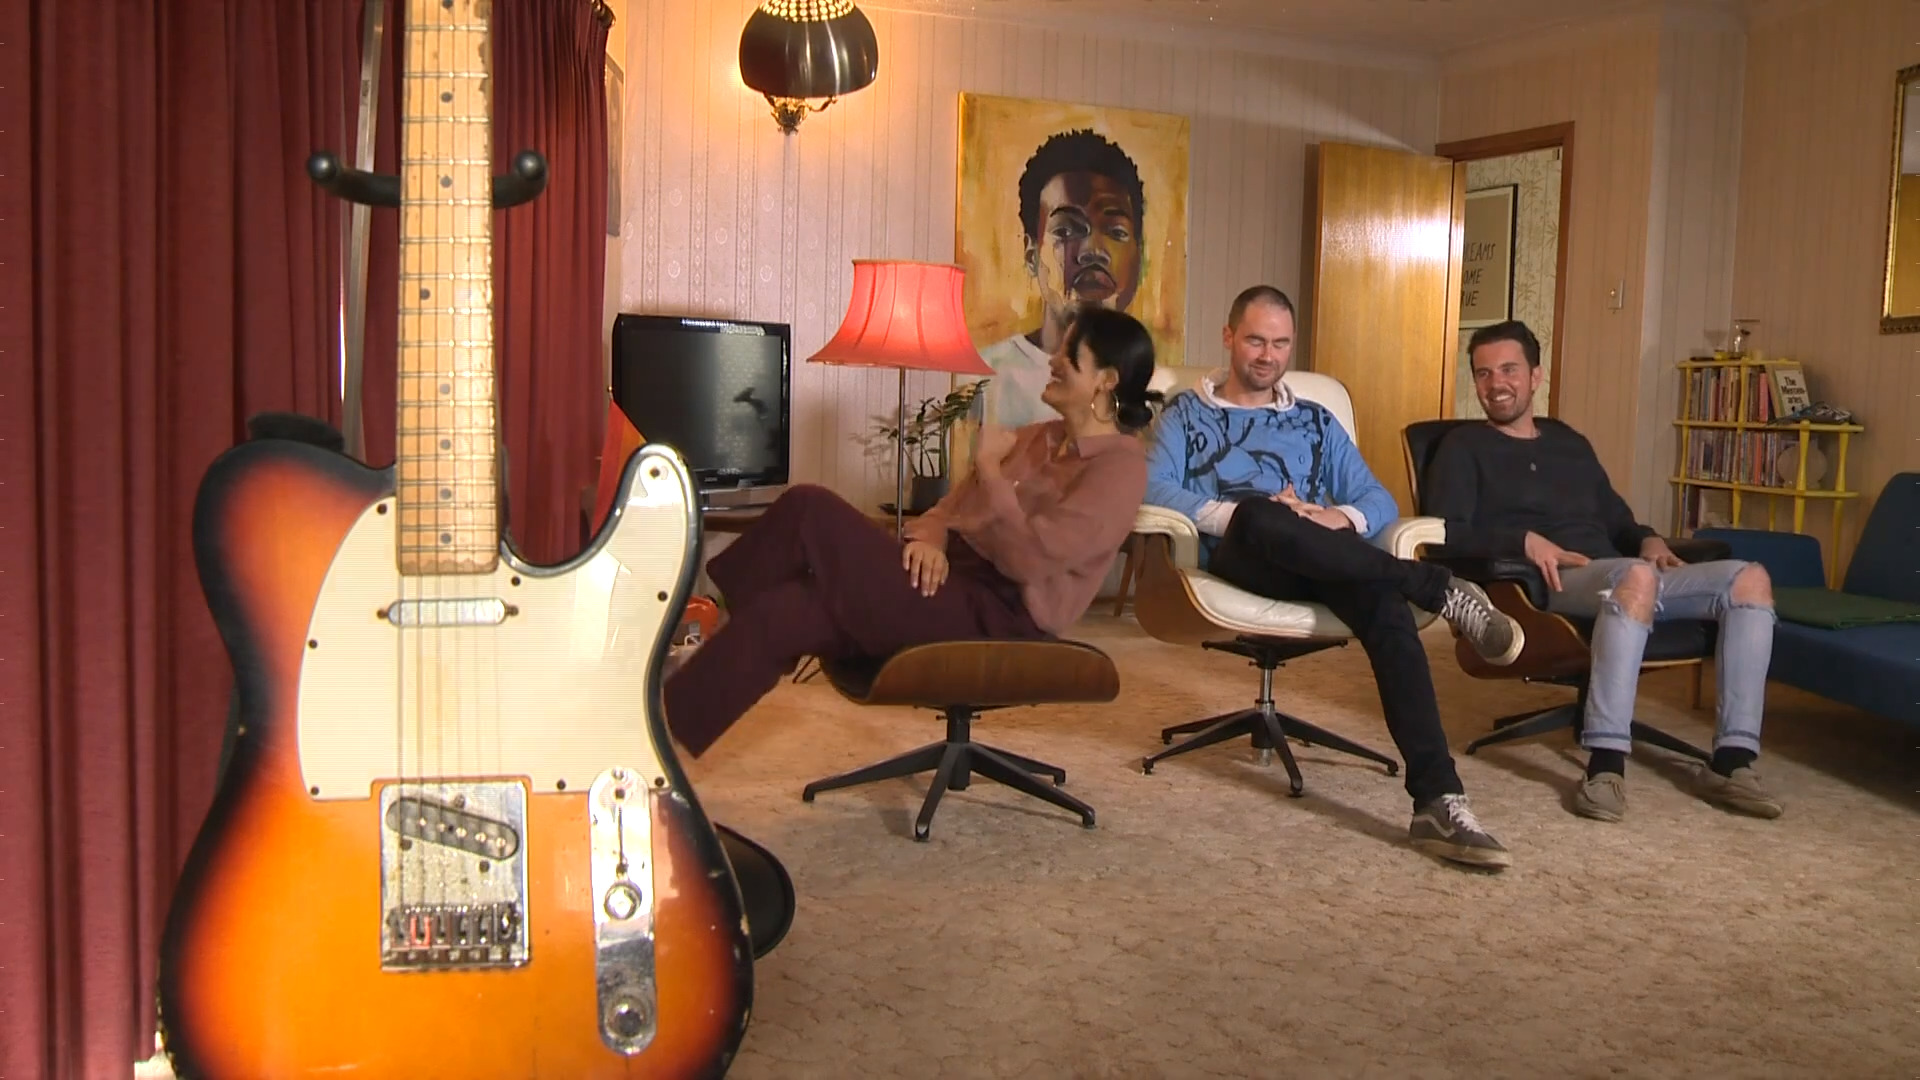 Video for Te reo electronic band signs with Kartel Music Group (UK)